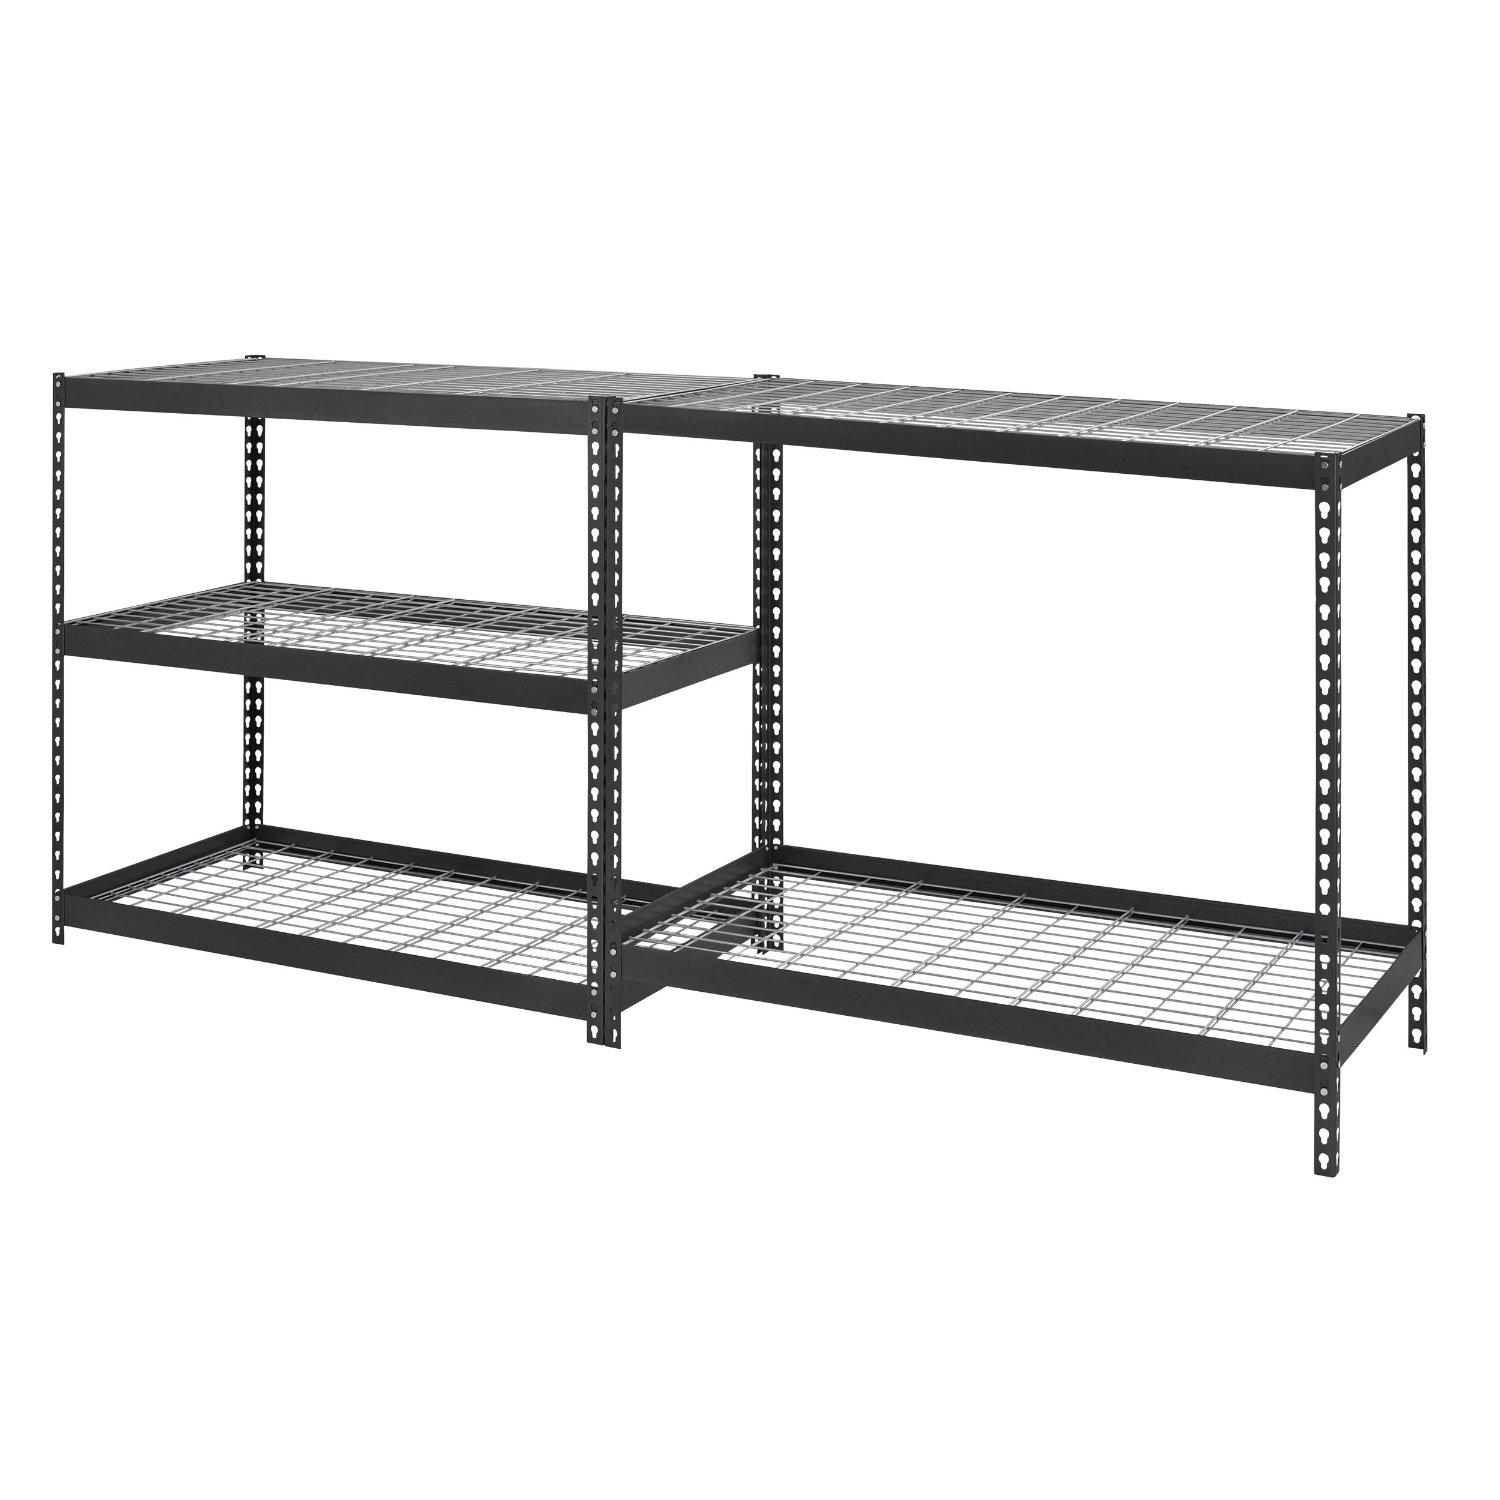 Adjustable Black Steel Shelving Units 5 Tier Review